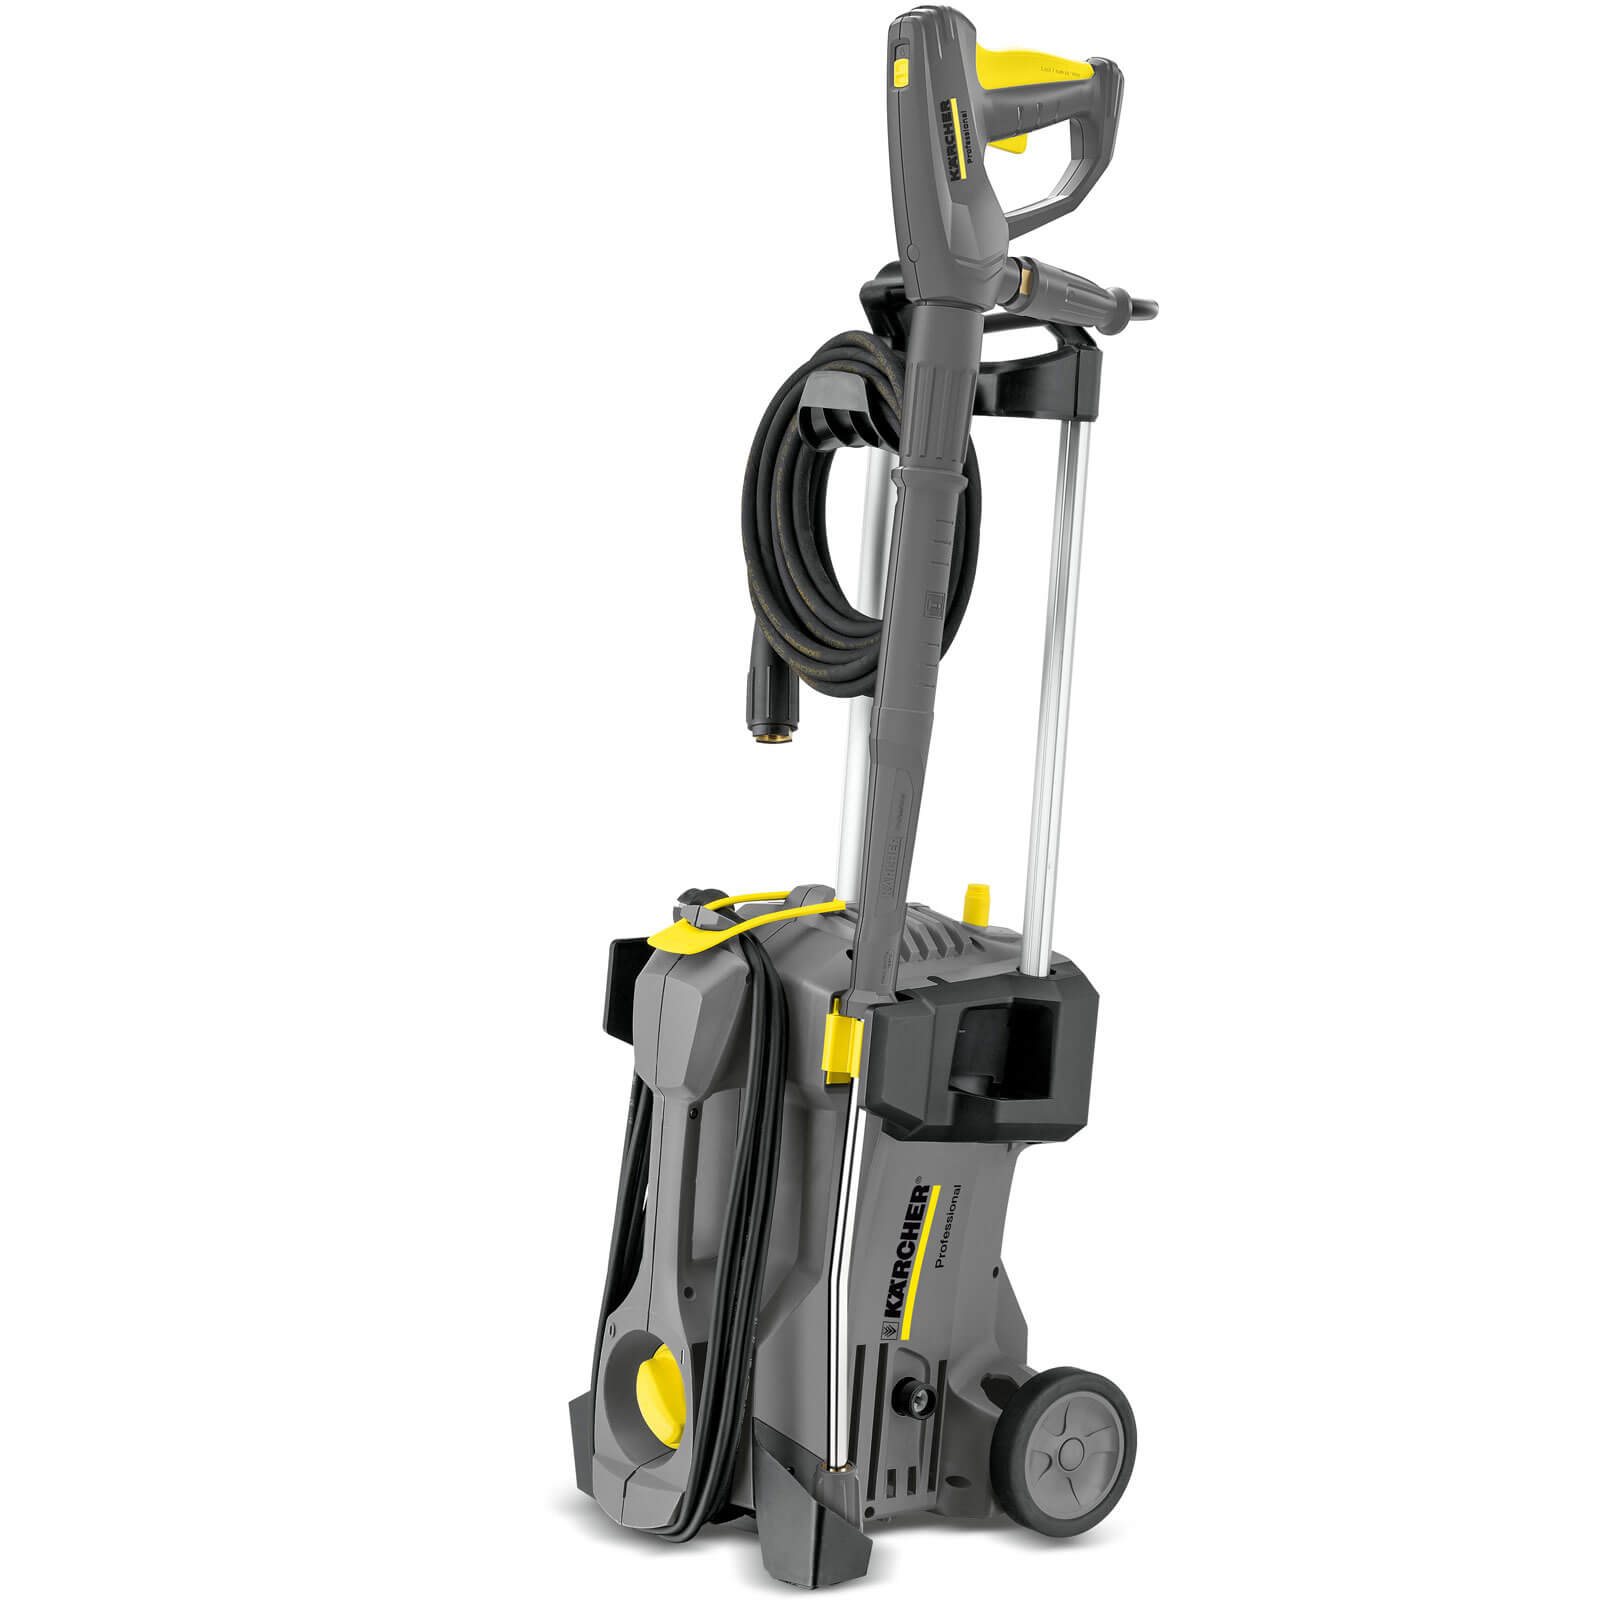 Karcher HD 511 P Professional Pressure Washer 160 Bar 240v